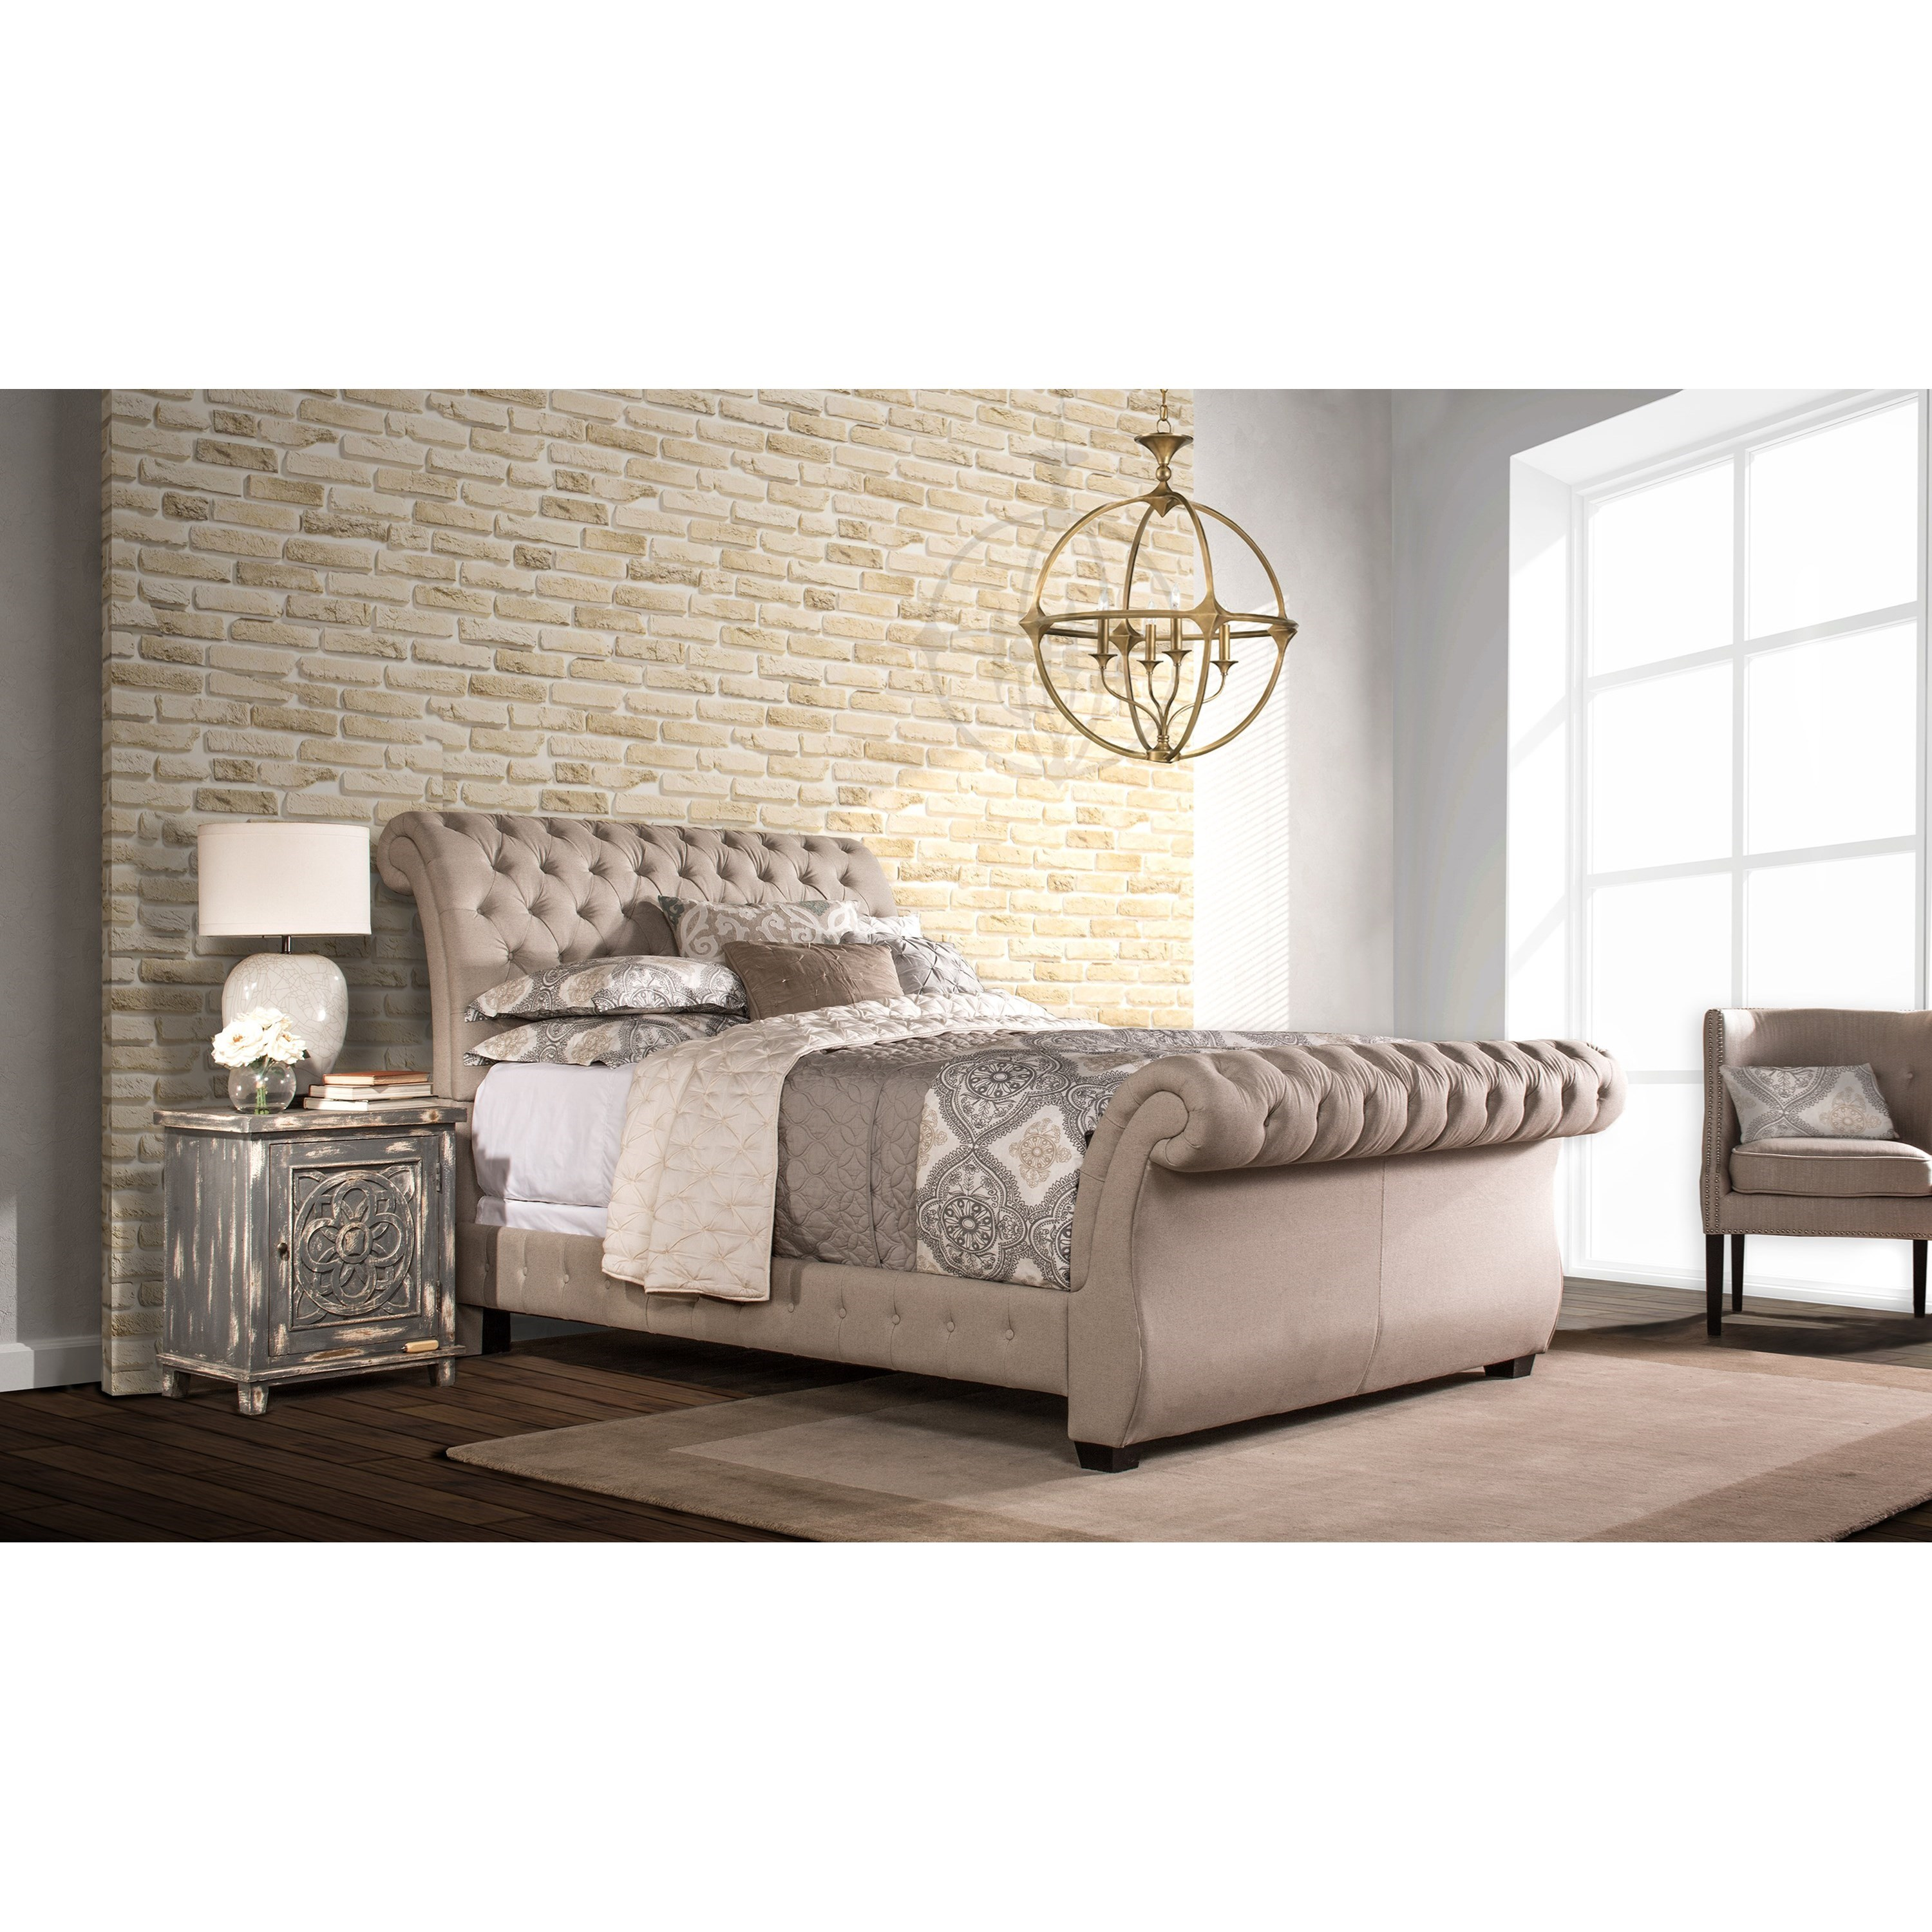 hillsdale upholstered beds queen bombay bed  item number bqrl. hillsdale upholstered beds bqrl queen bombay upholstered bed